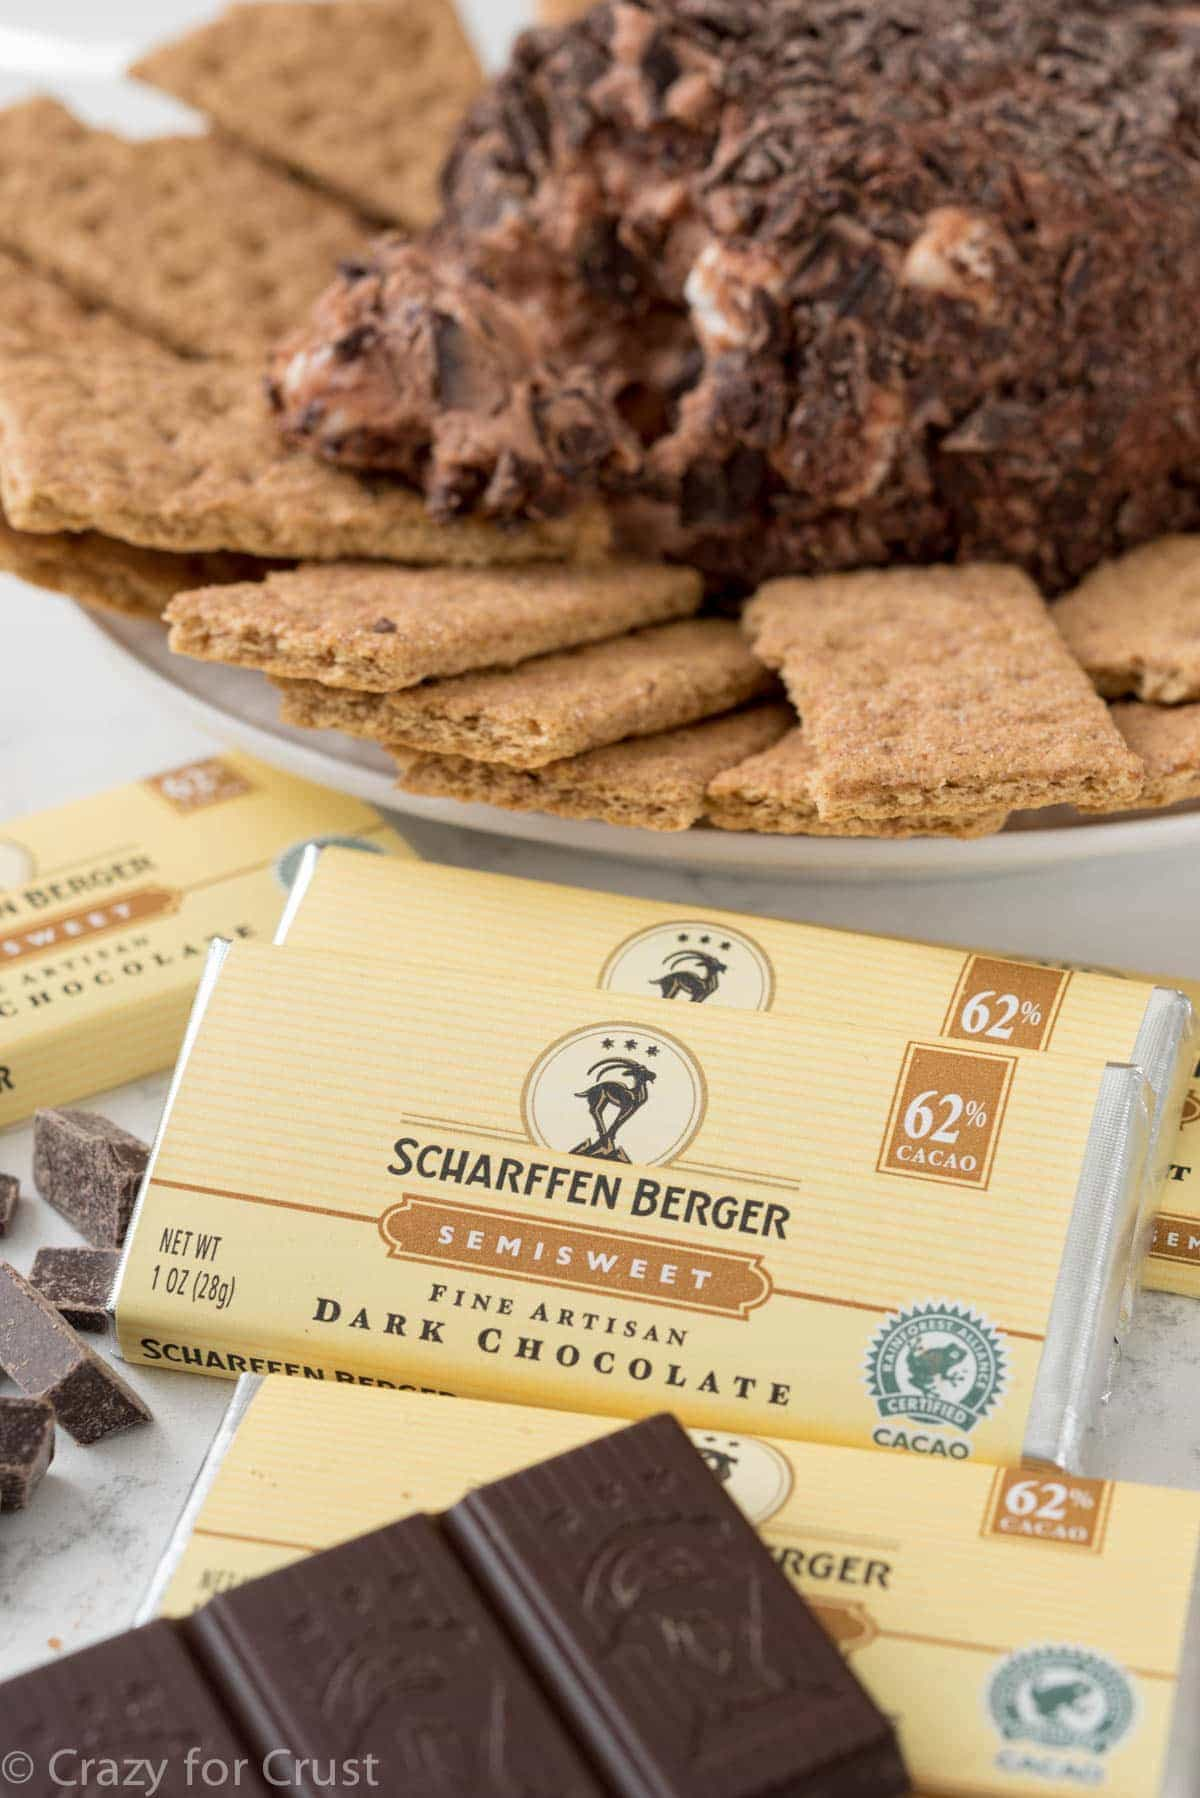 Scharffen Berger Chocolate used in making a chocolate s'mores cheeseball.